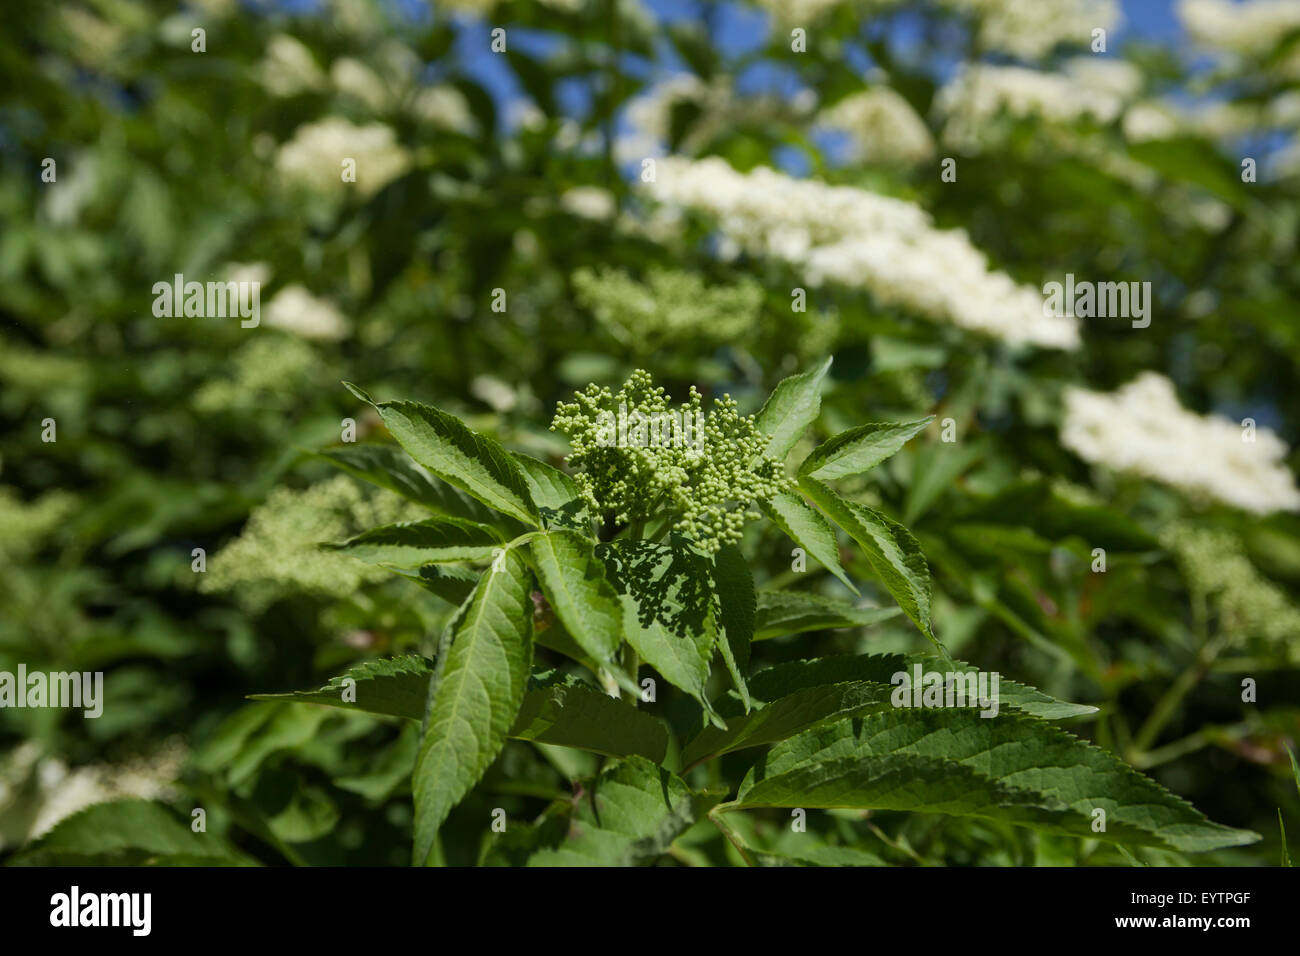 holunderbl ten sambucus moschus kraut pflanzen adoxaceae stockfoto bild 85981743 alamy. Black Bedroom Furniture Sets. Home Design Ideas